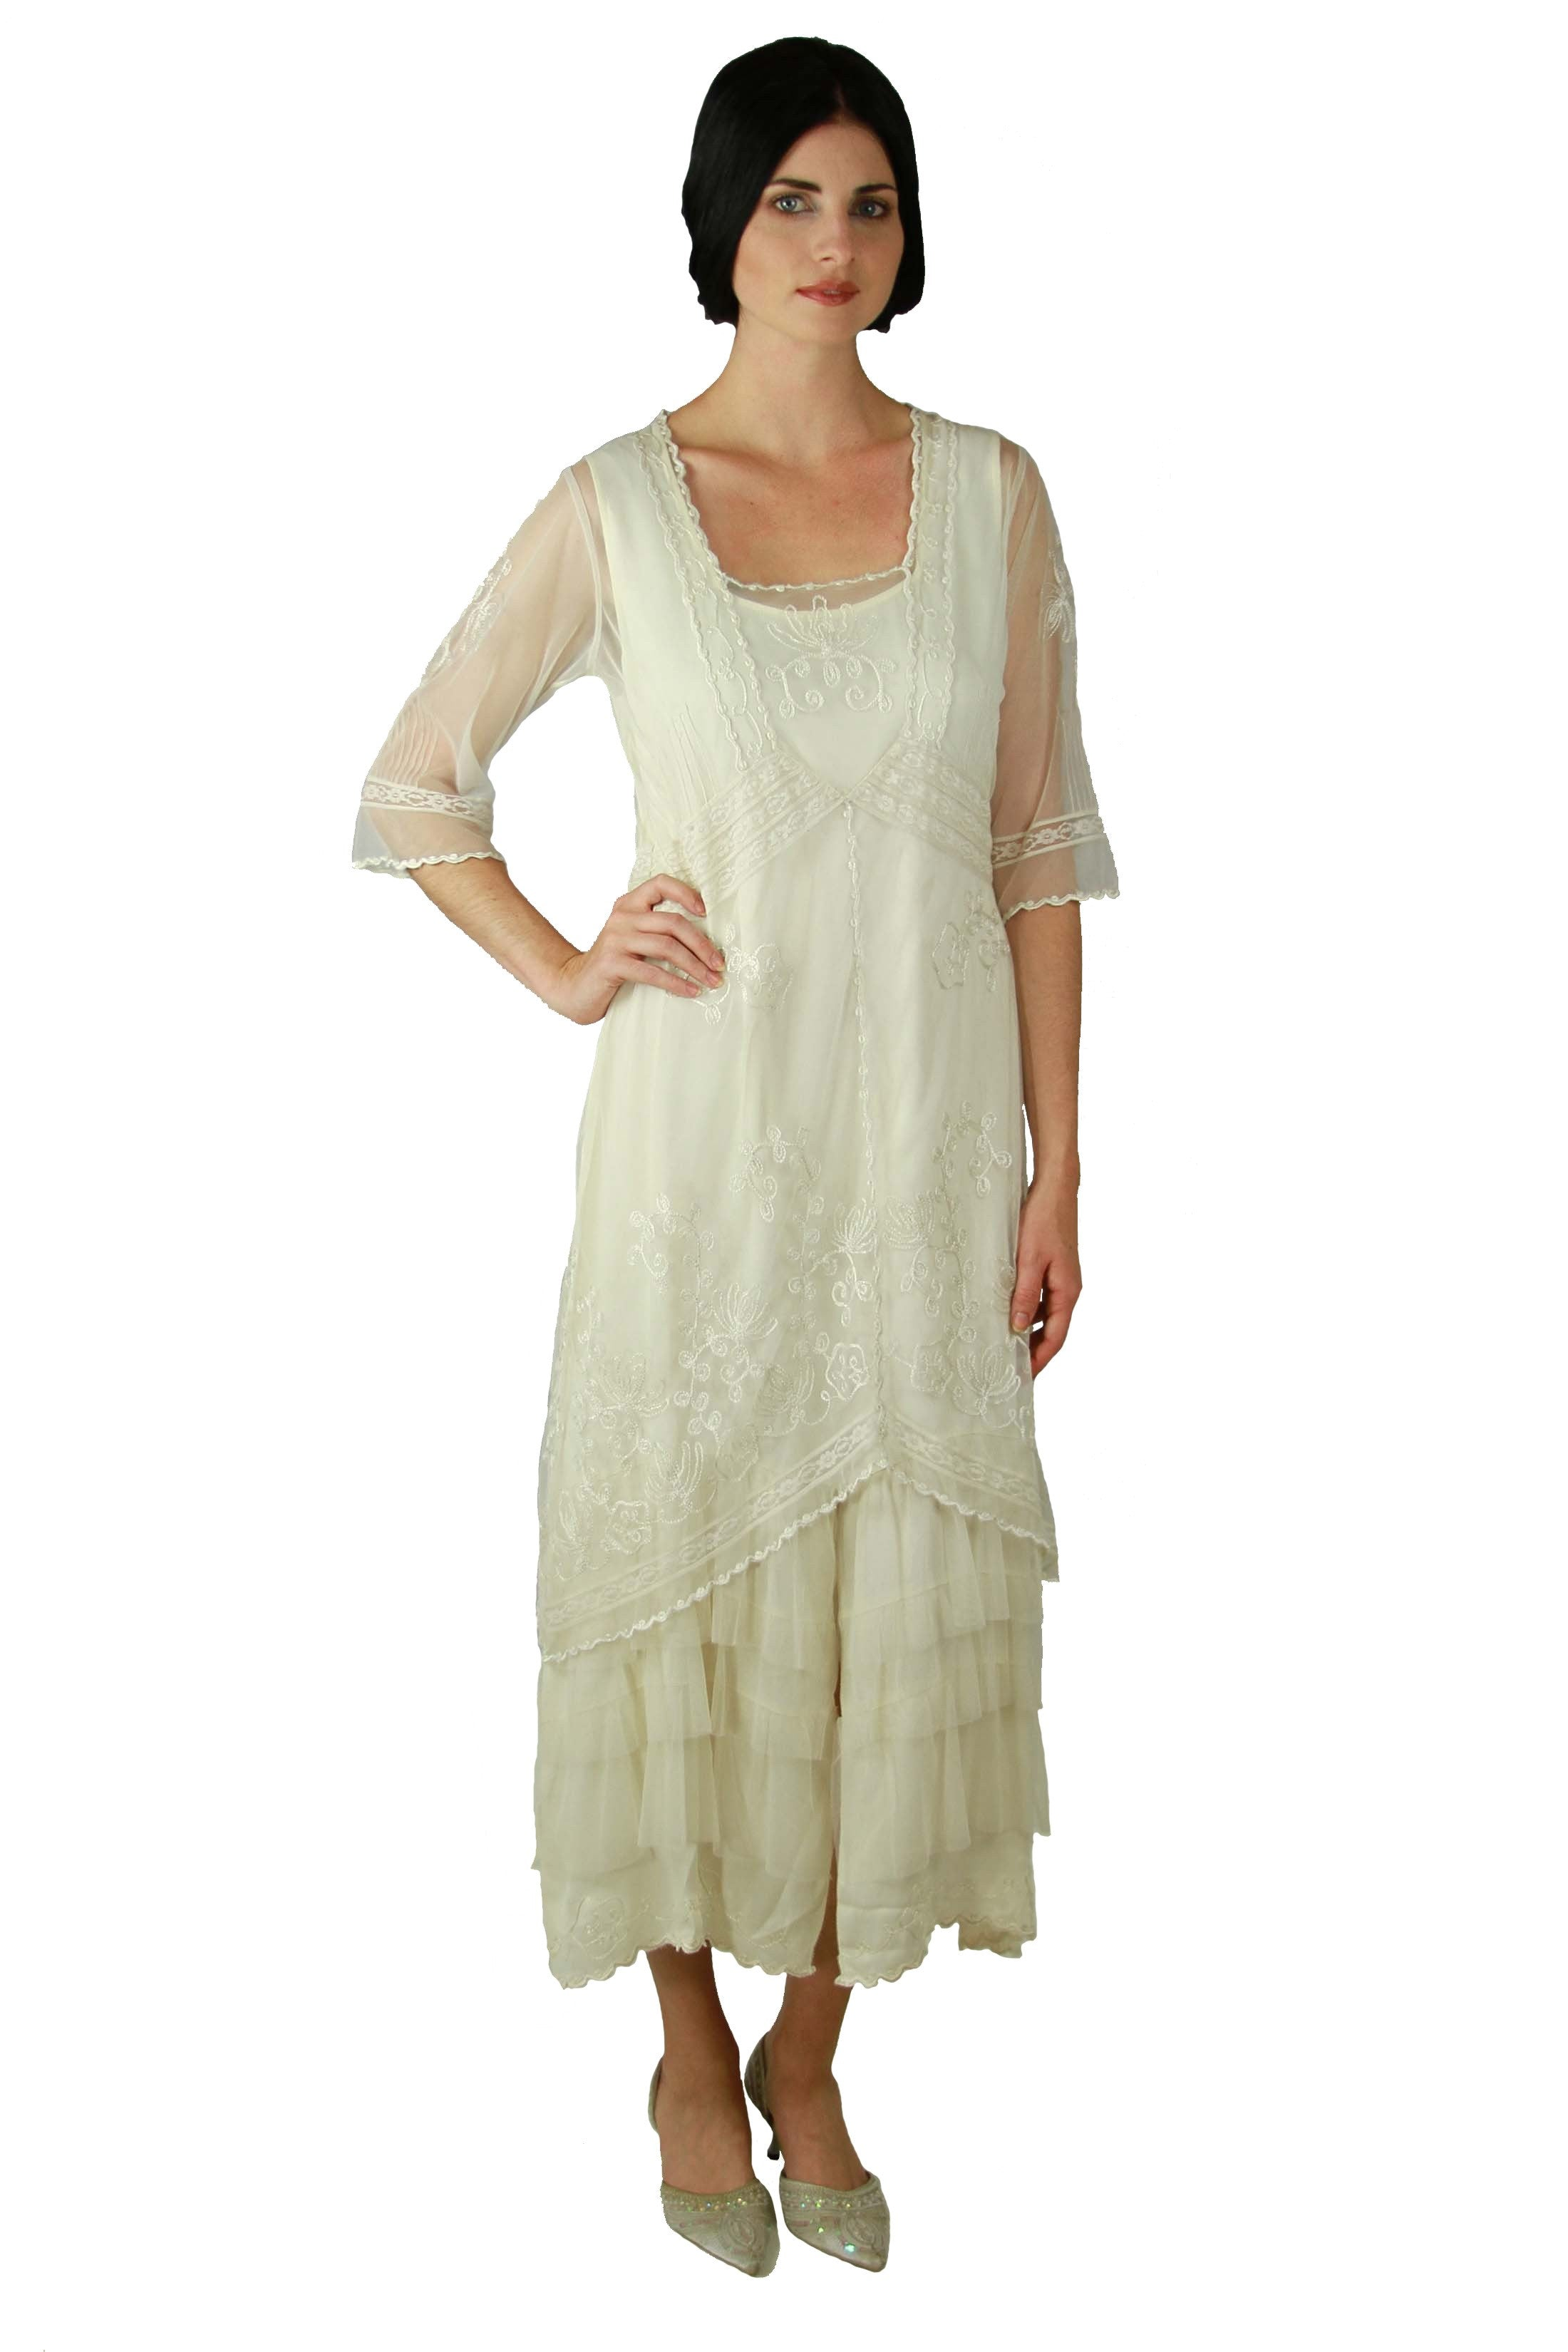 1900 -1910s Edwardian Fashion, Clothing & Costumes Titanic Tea Party Dress in Ivory by Nataya $228.00 AT vintagedancer.com